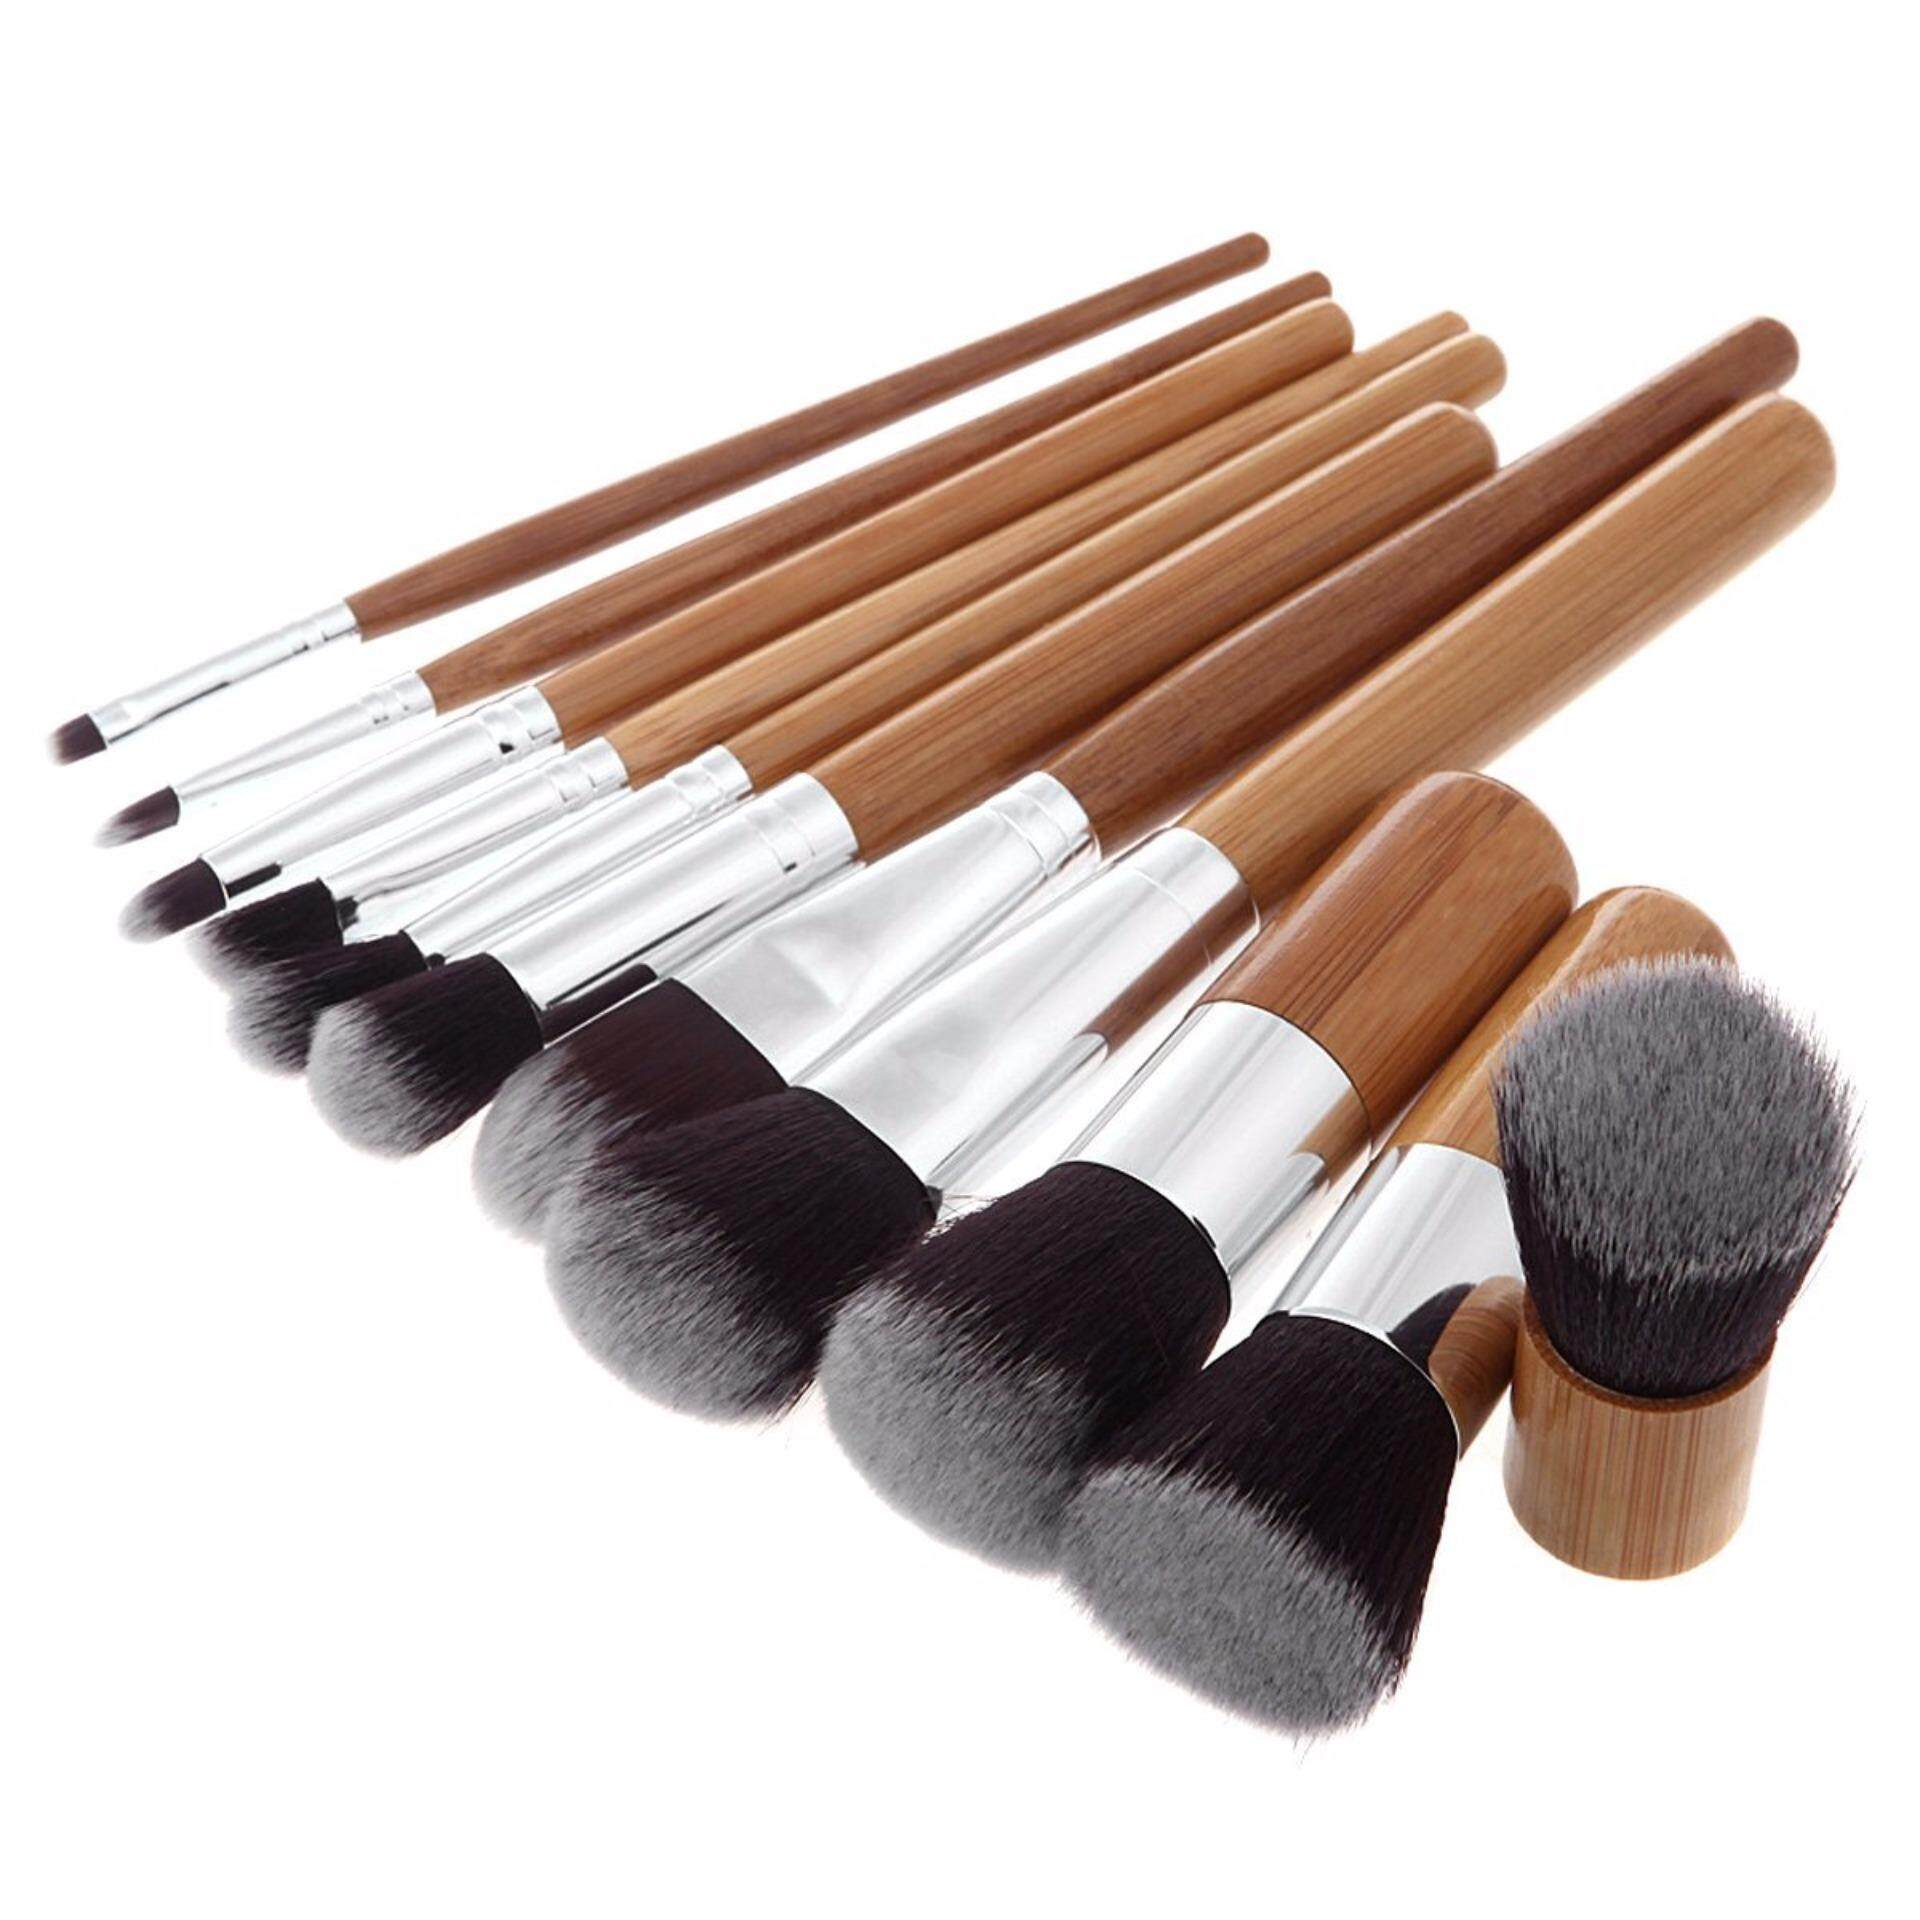 635e221063d3 Cosmetic New 12 Piece makeup make up Brush Set Bamboo Handle Premium  Synthetic Kabuki Foundation Blending Blush Concealer Eye Face Liquid Powder  Cream ...